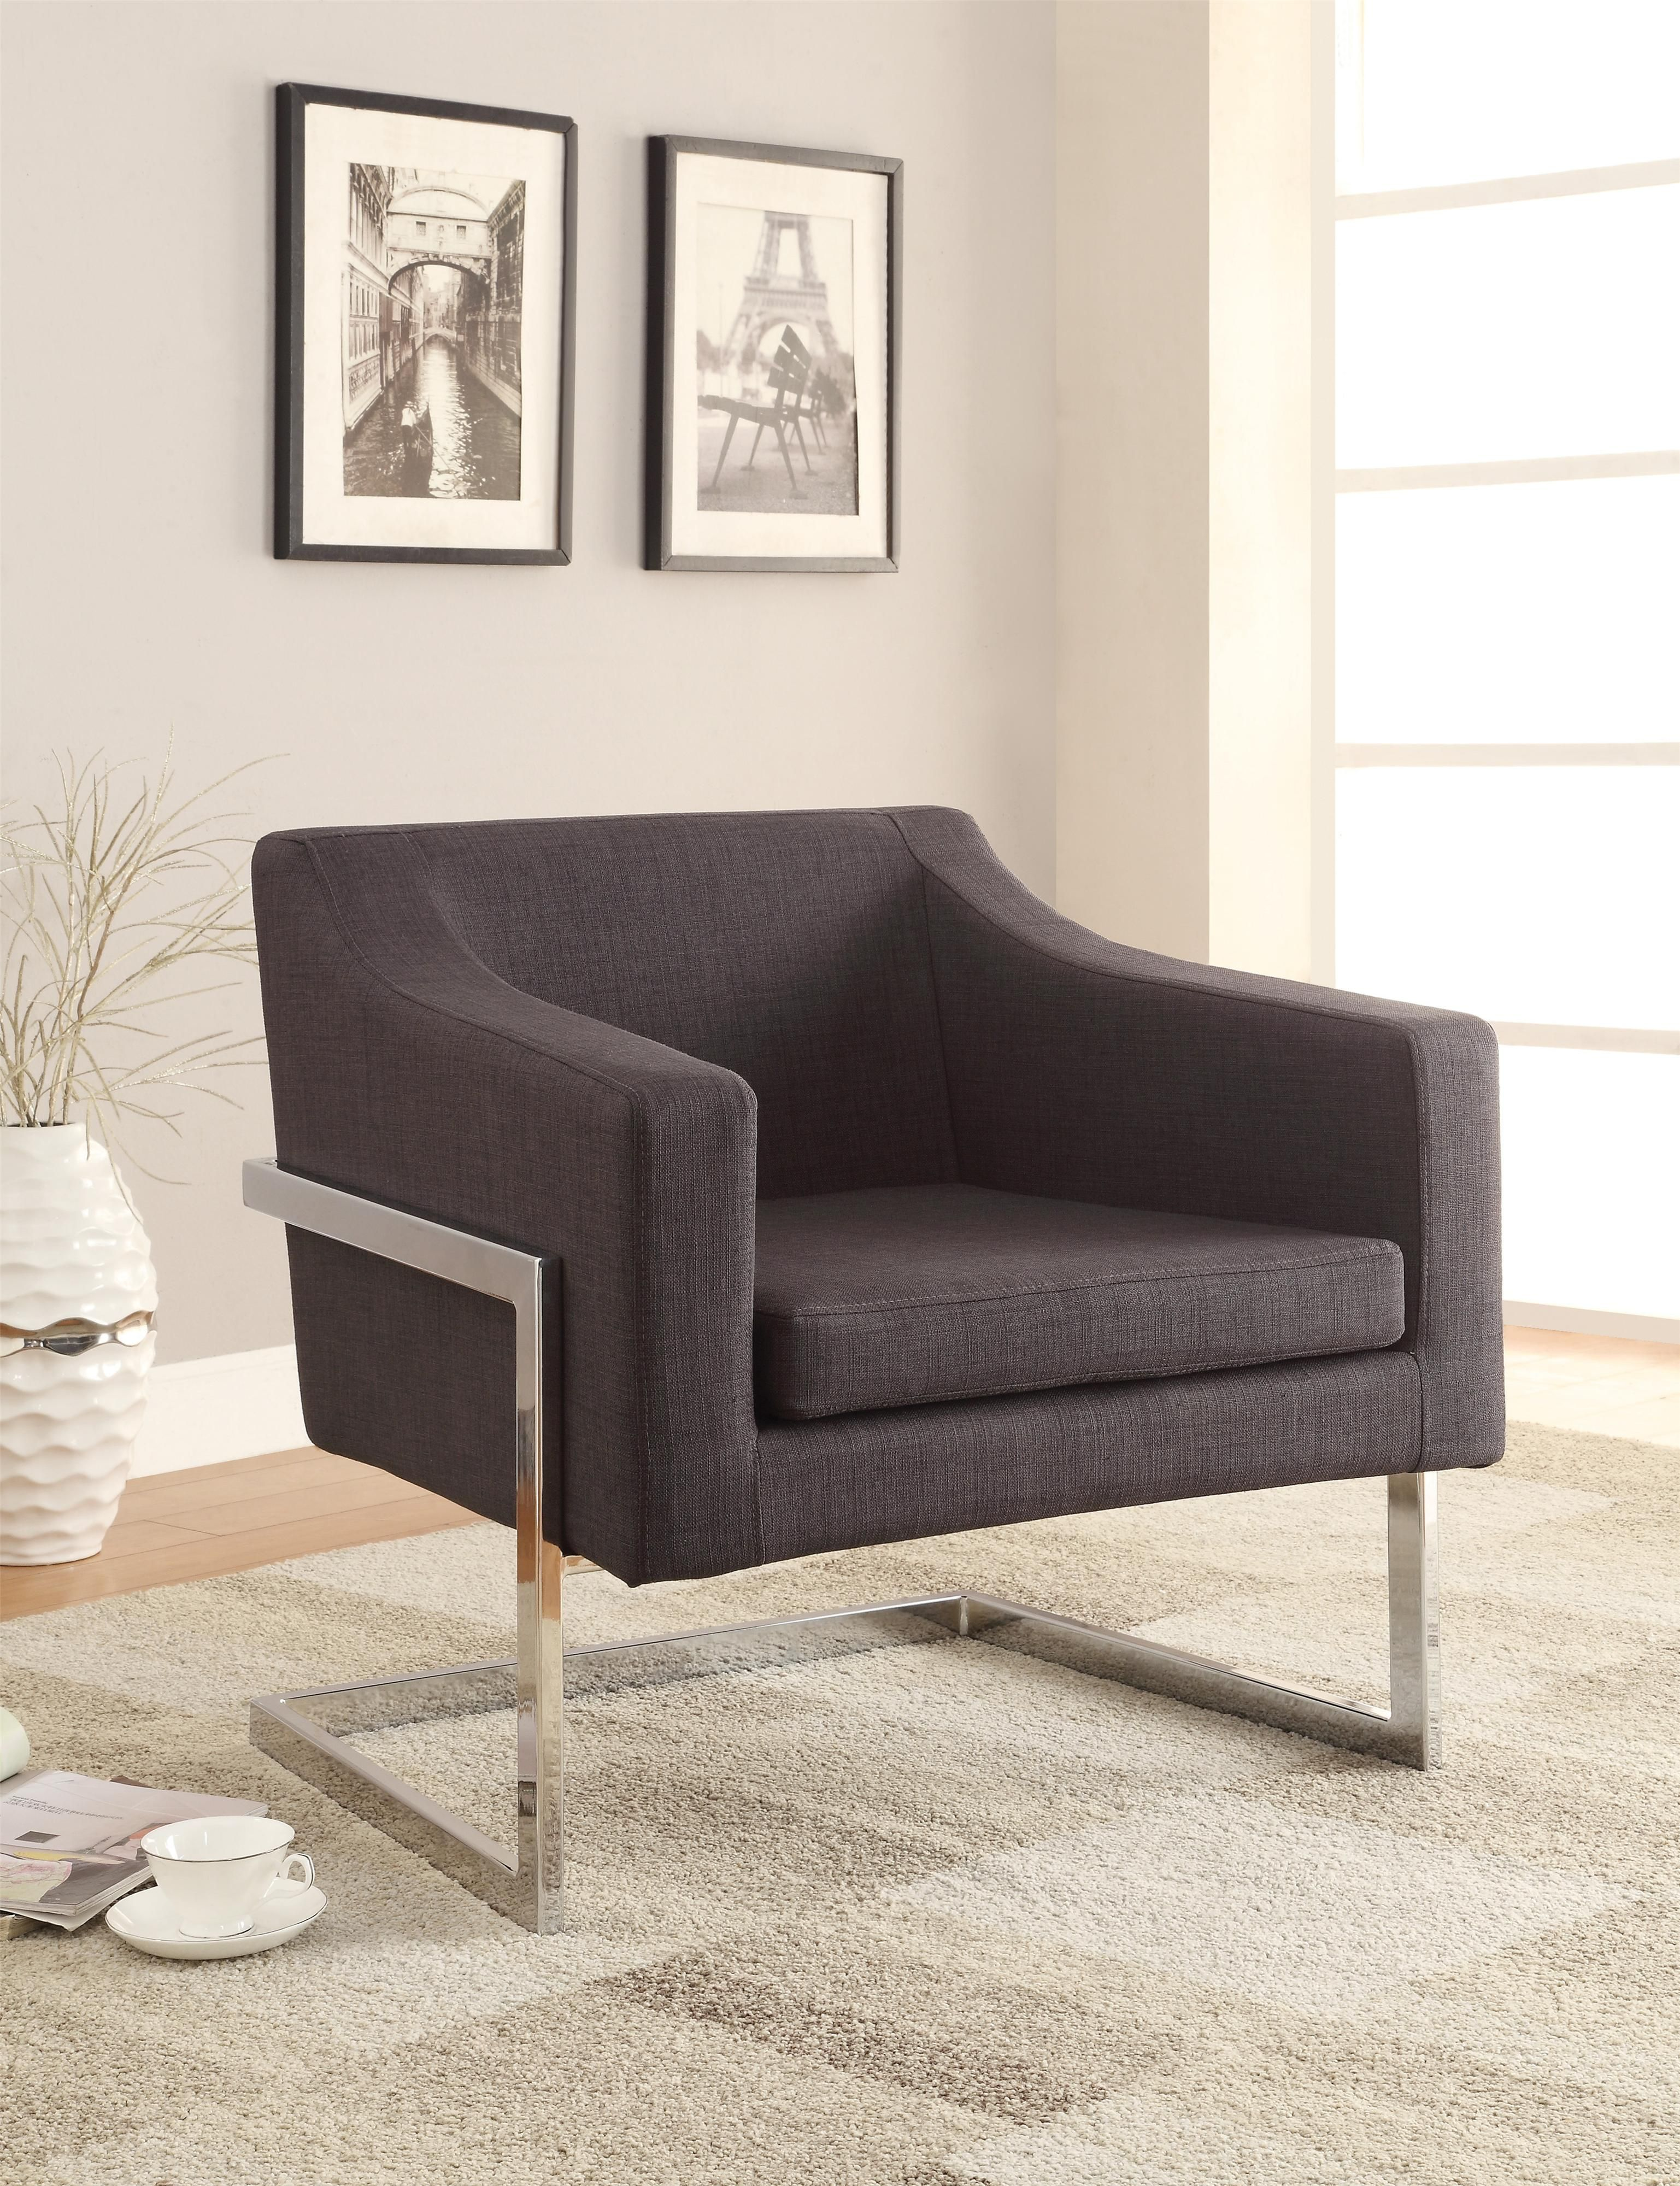 Coaster Accent Seating Contemporary Accent Chair in Grey Linen Like